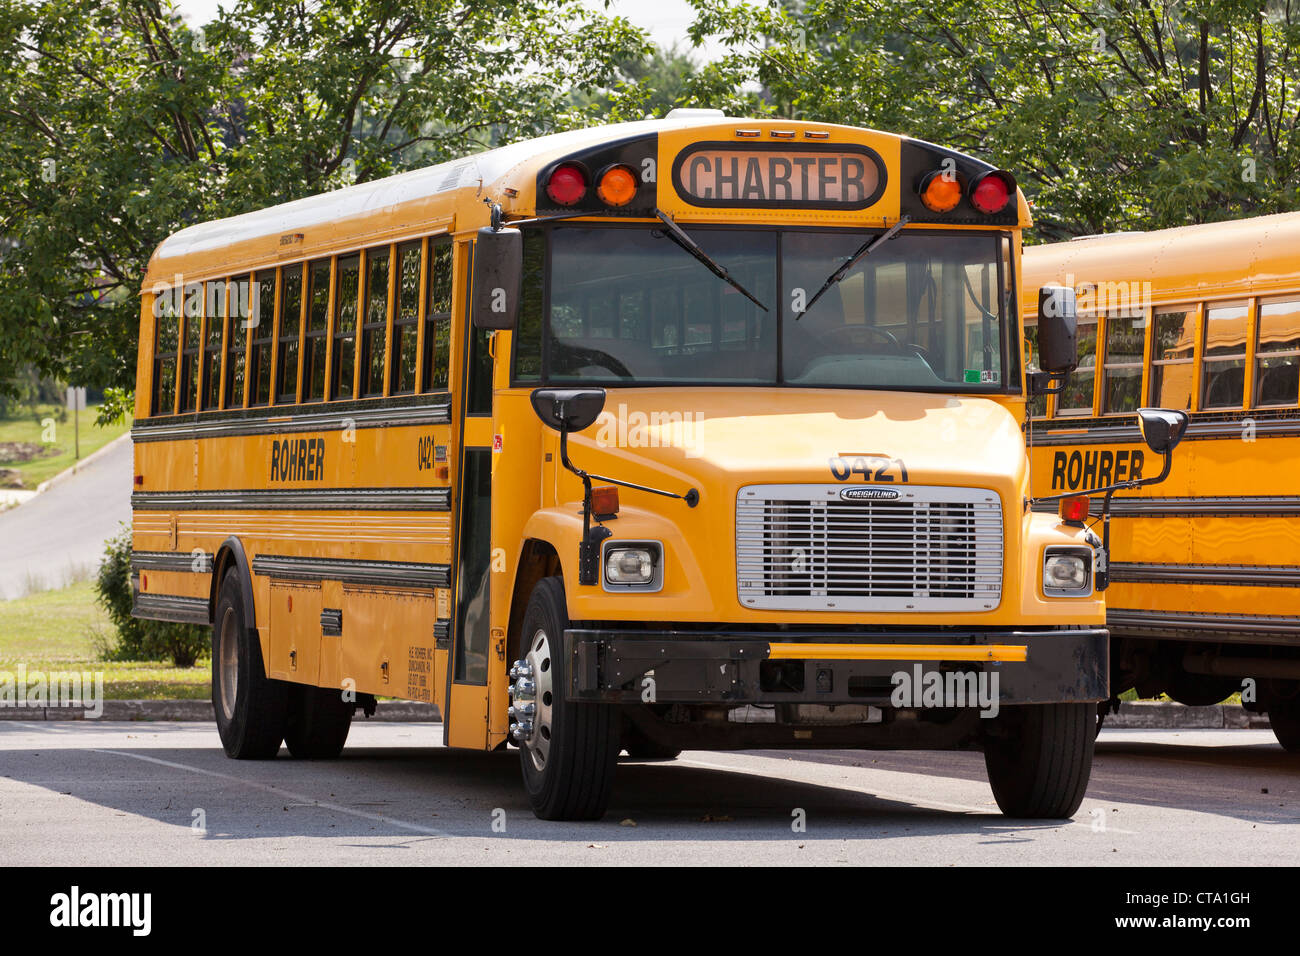 Parked school bus - Stock Image